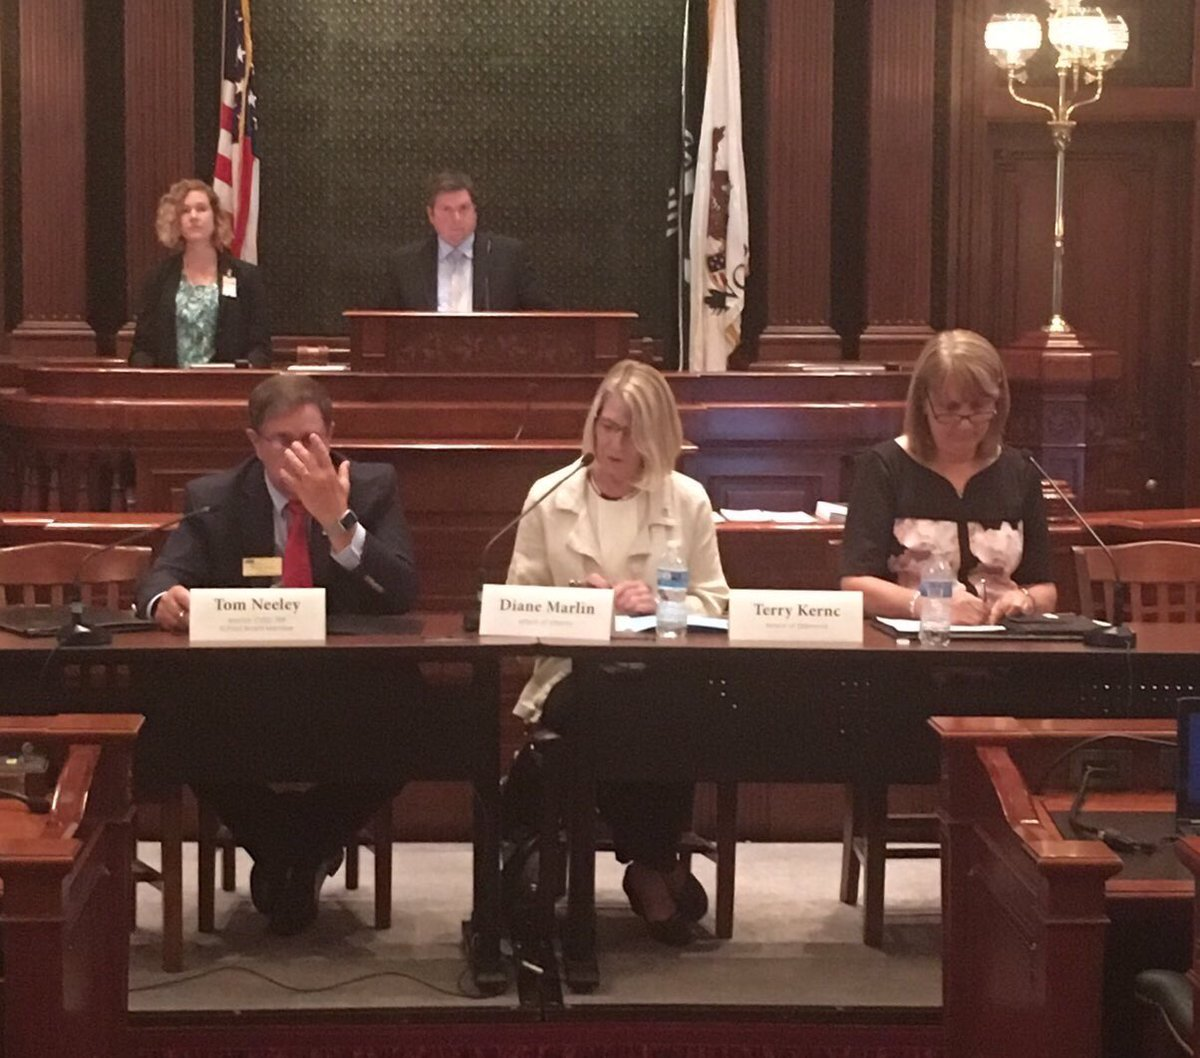 test Twitter Media - .@cityofurbana Mayor Diane Marlin testifying in the House: property tax freeze would damage schools, parks, libraries and infrastructure. https://t.co/91DnIiVdRT